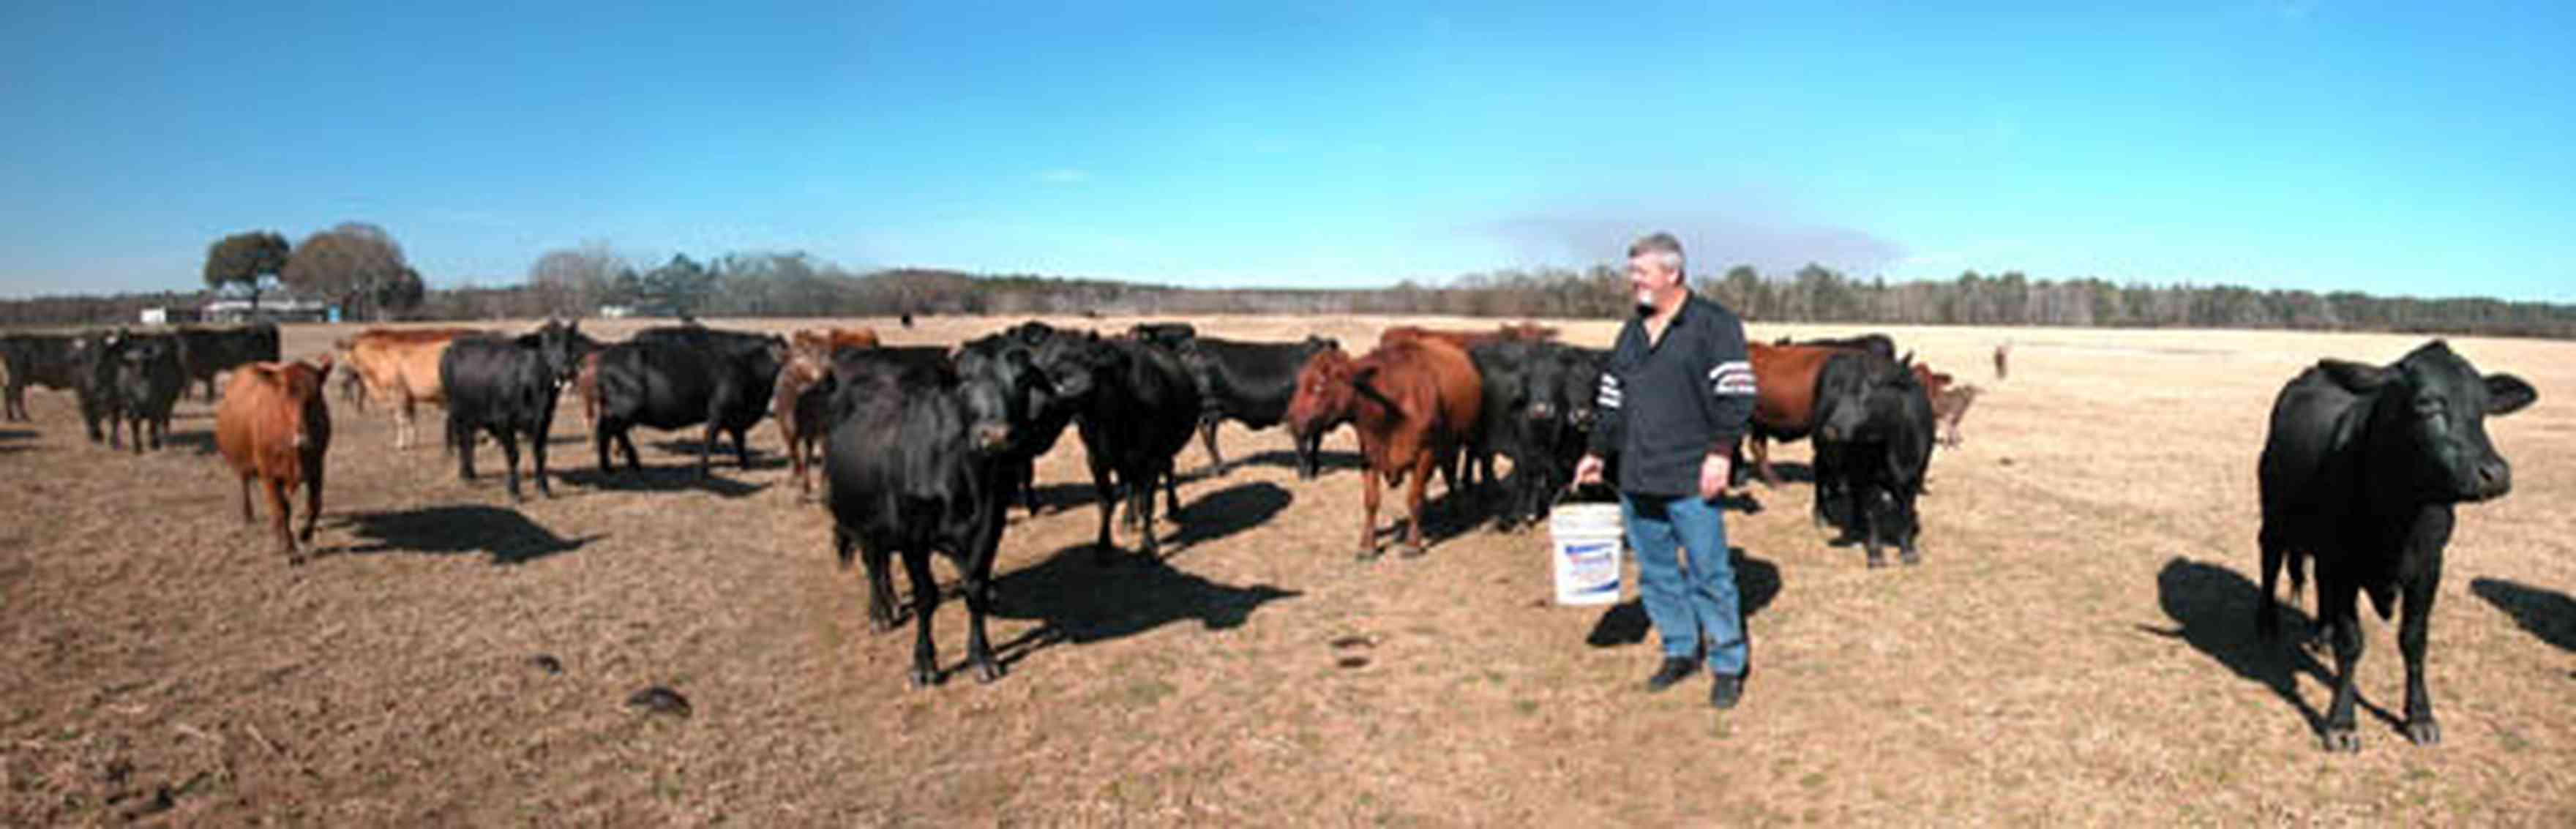 Allentown:-Mathews-Cow-Pasture_02.jpg:  beef cattle, black angus cattle, field, pasture, cows, feeding cows, farmer, steve matthews, ,